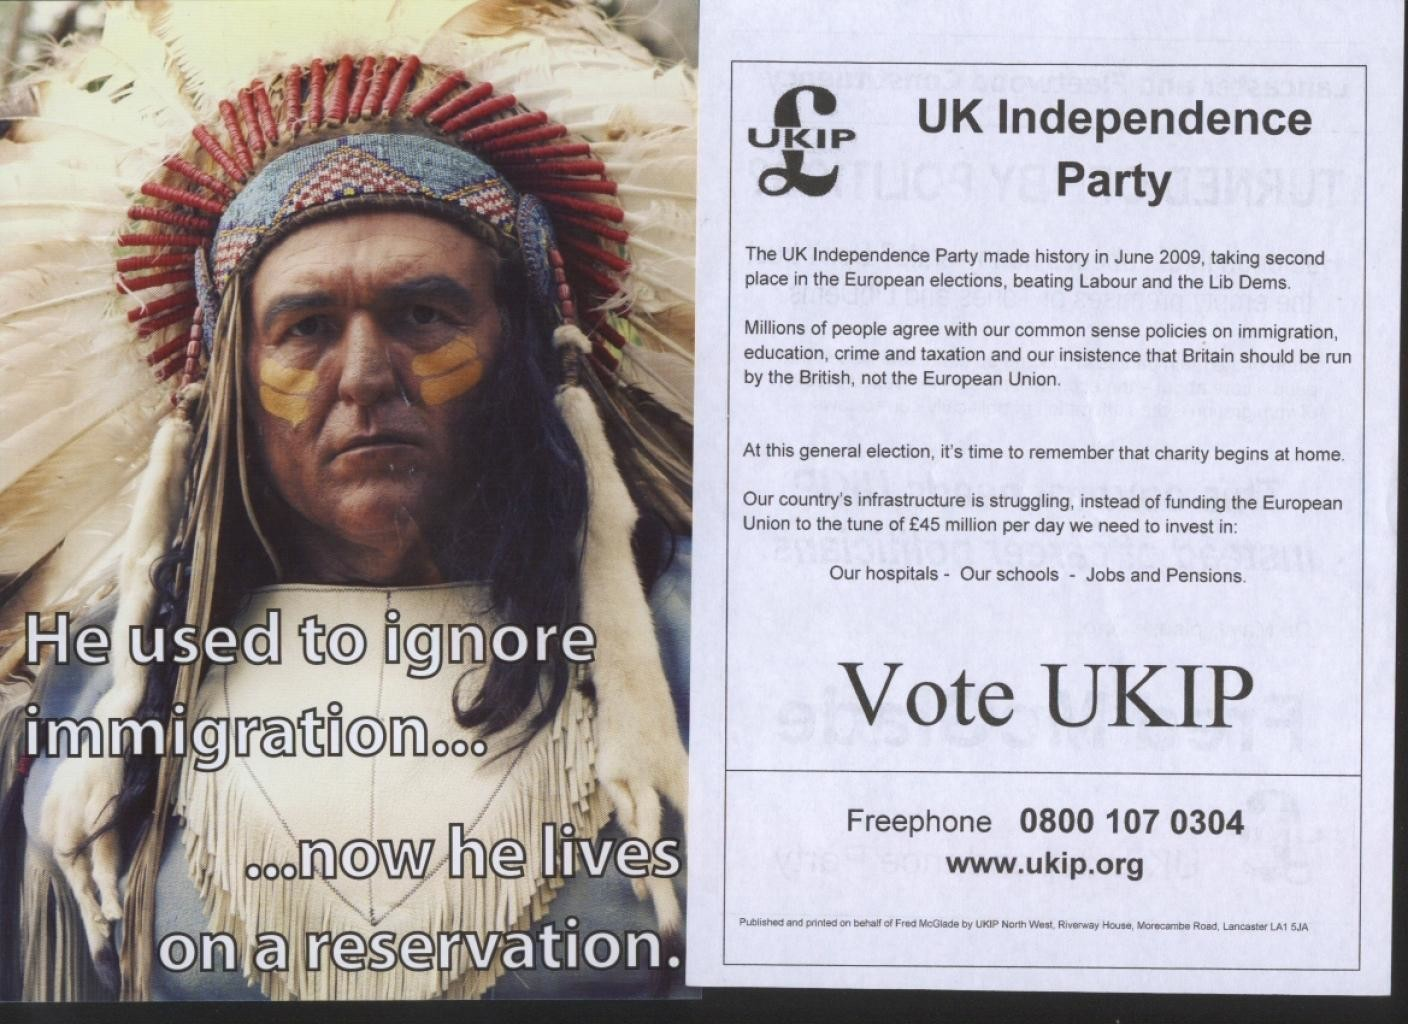 ukip compares immigration native american oppression left ukip compares immigration oppression of native americans